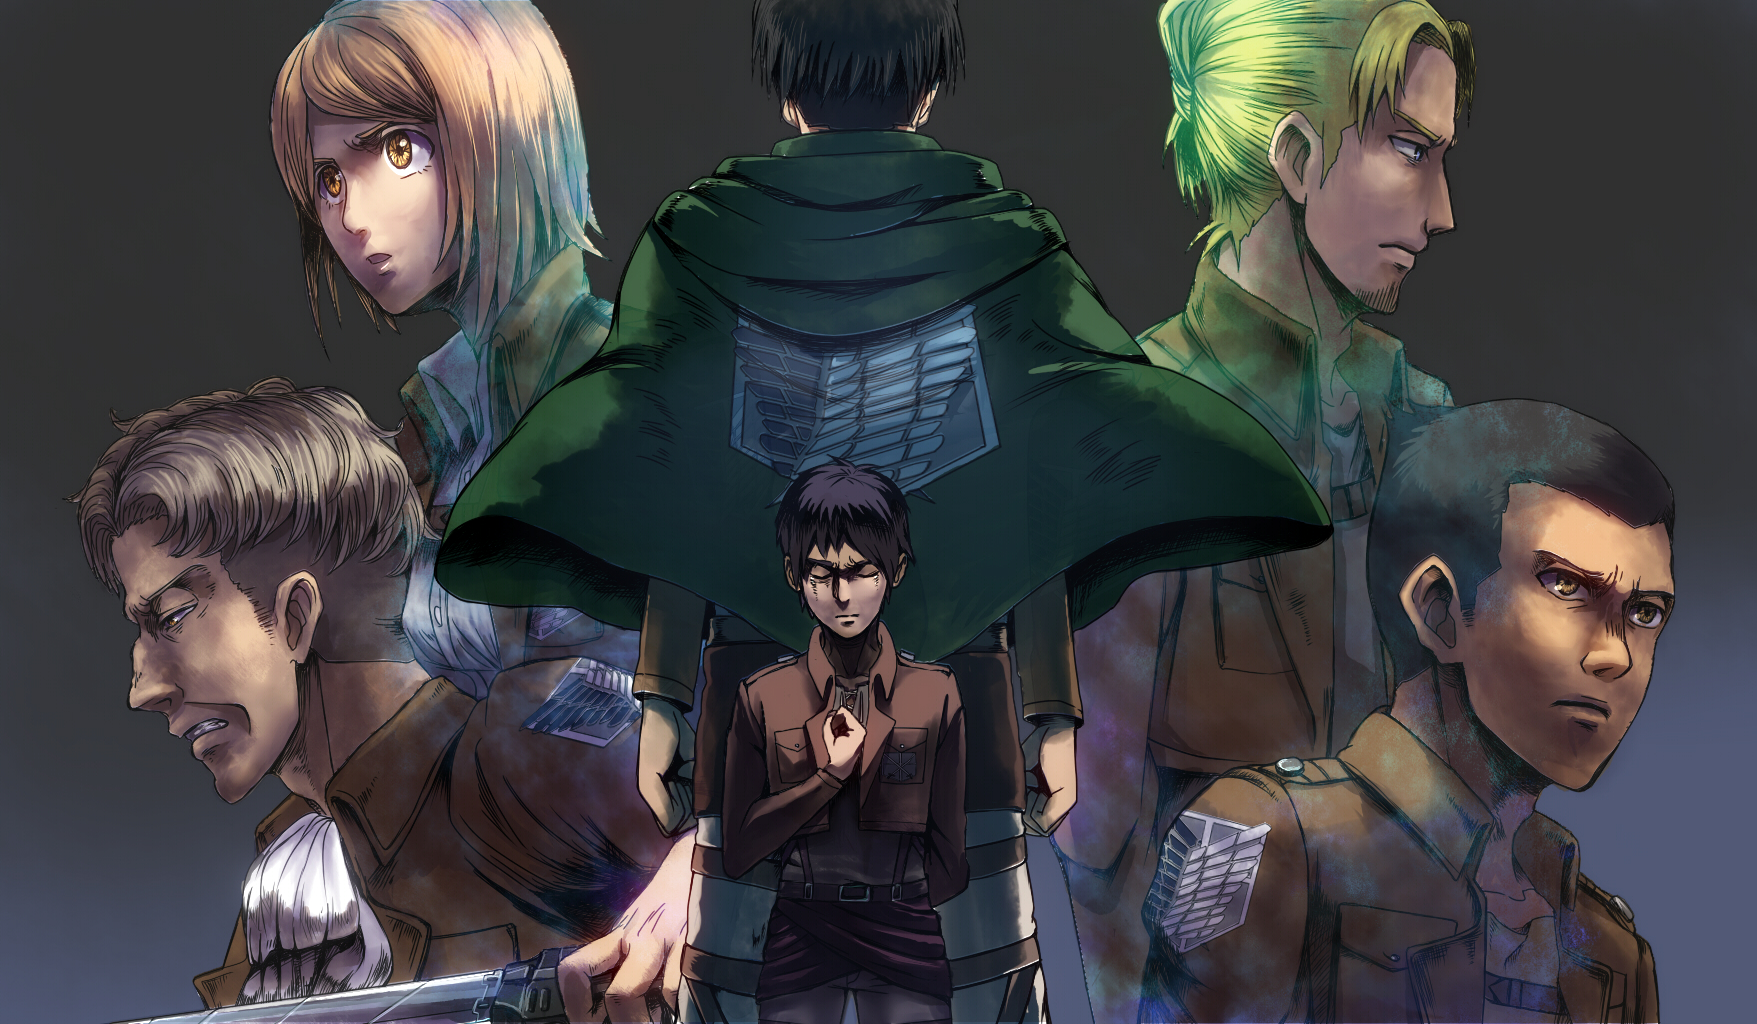 Special Operations Squad Attack On Titan Page 5 Of 6 Zerochan Anime Image Board